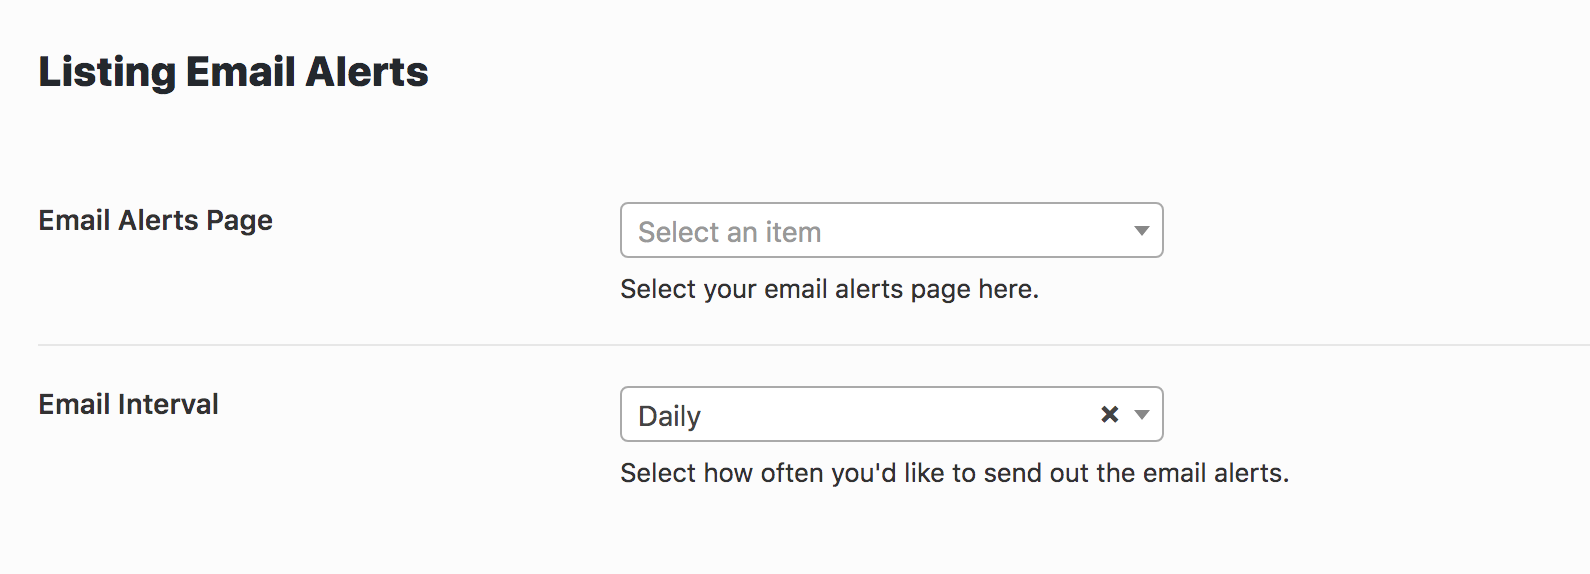 Saved Search & Email Alerts Admin Options